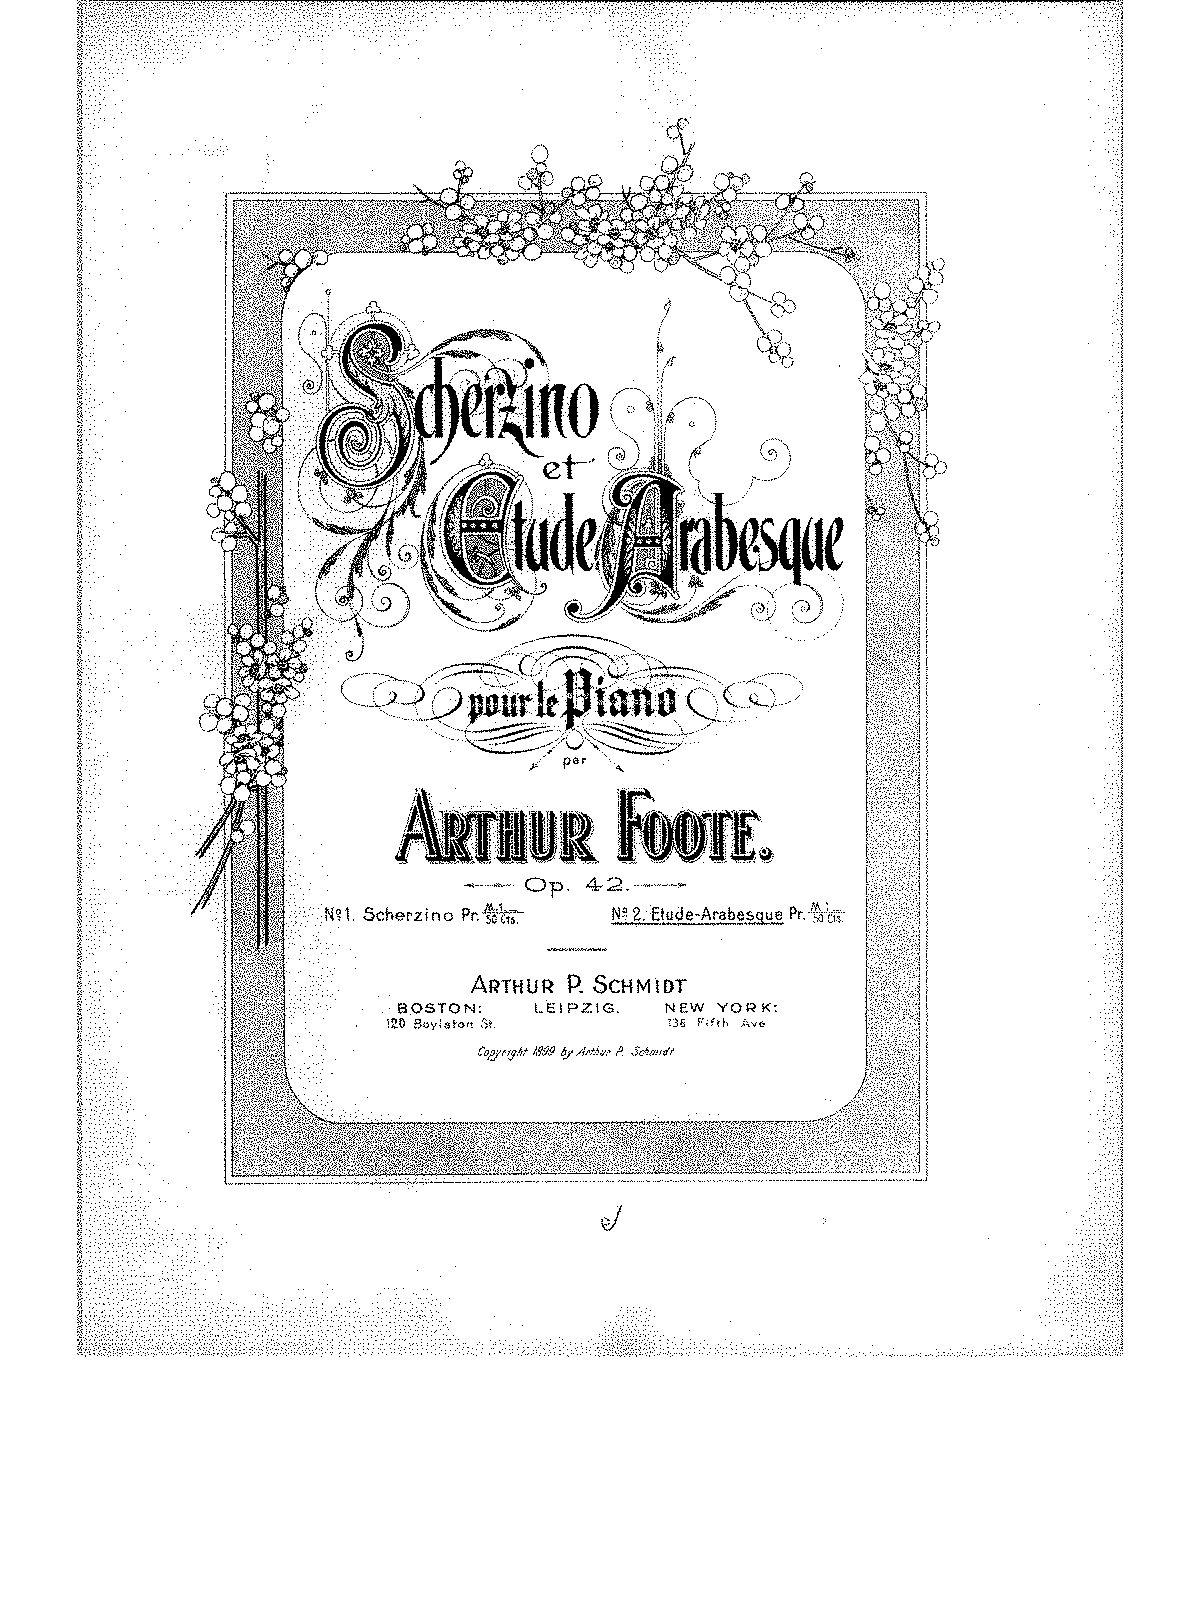 SIBLEY1802.7331.b9a9-39087012346526Etude-Arabesque color cover.pdf